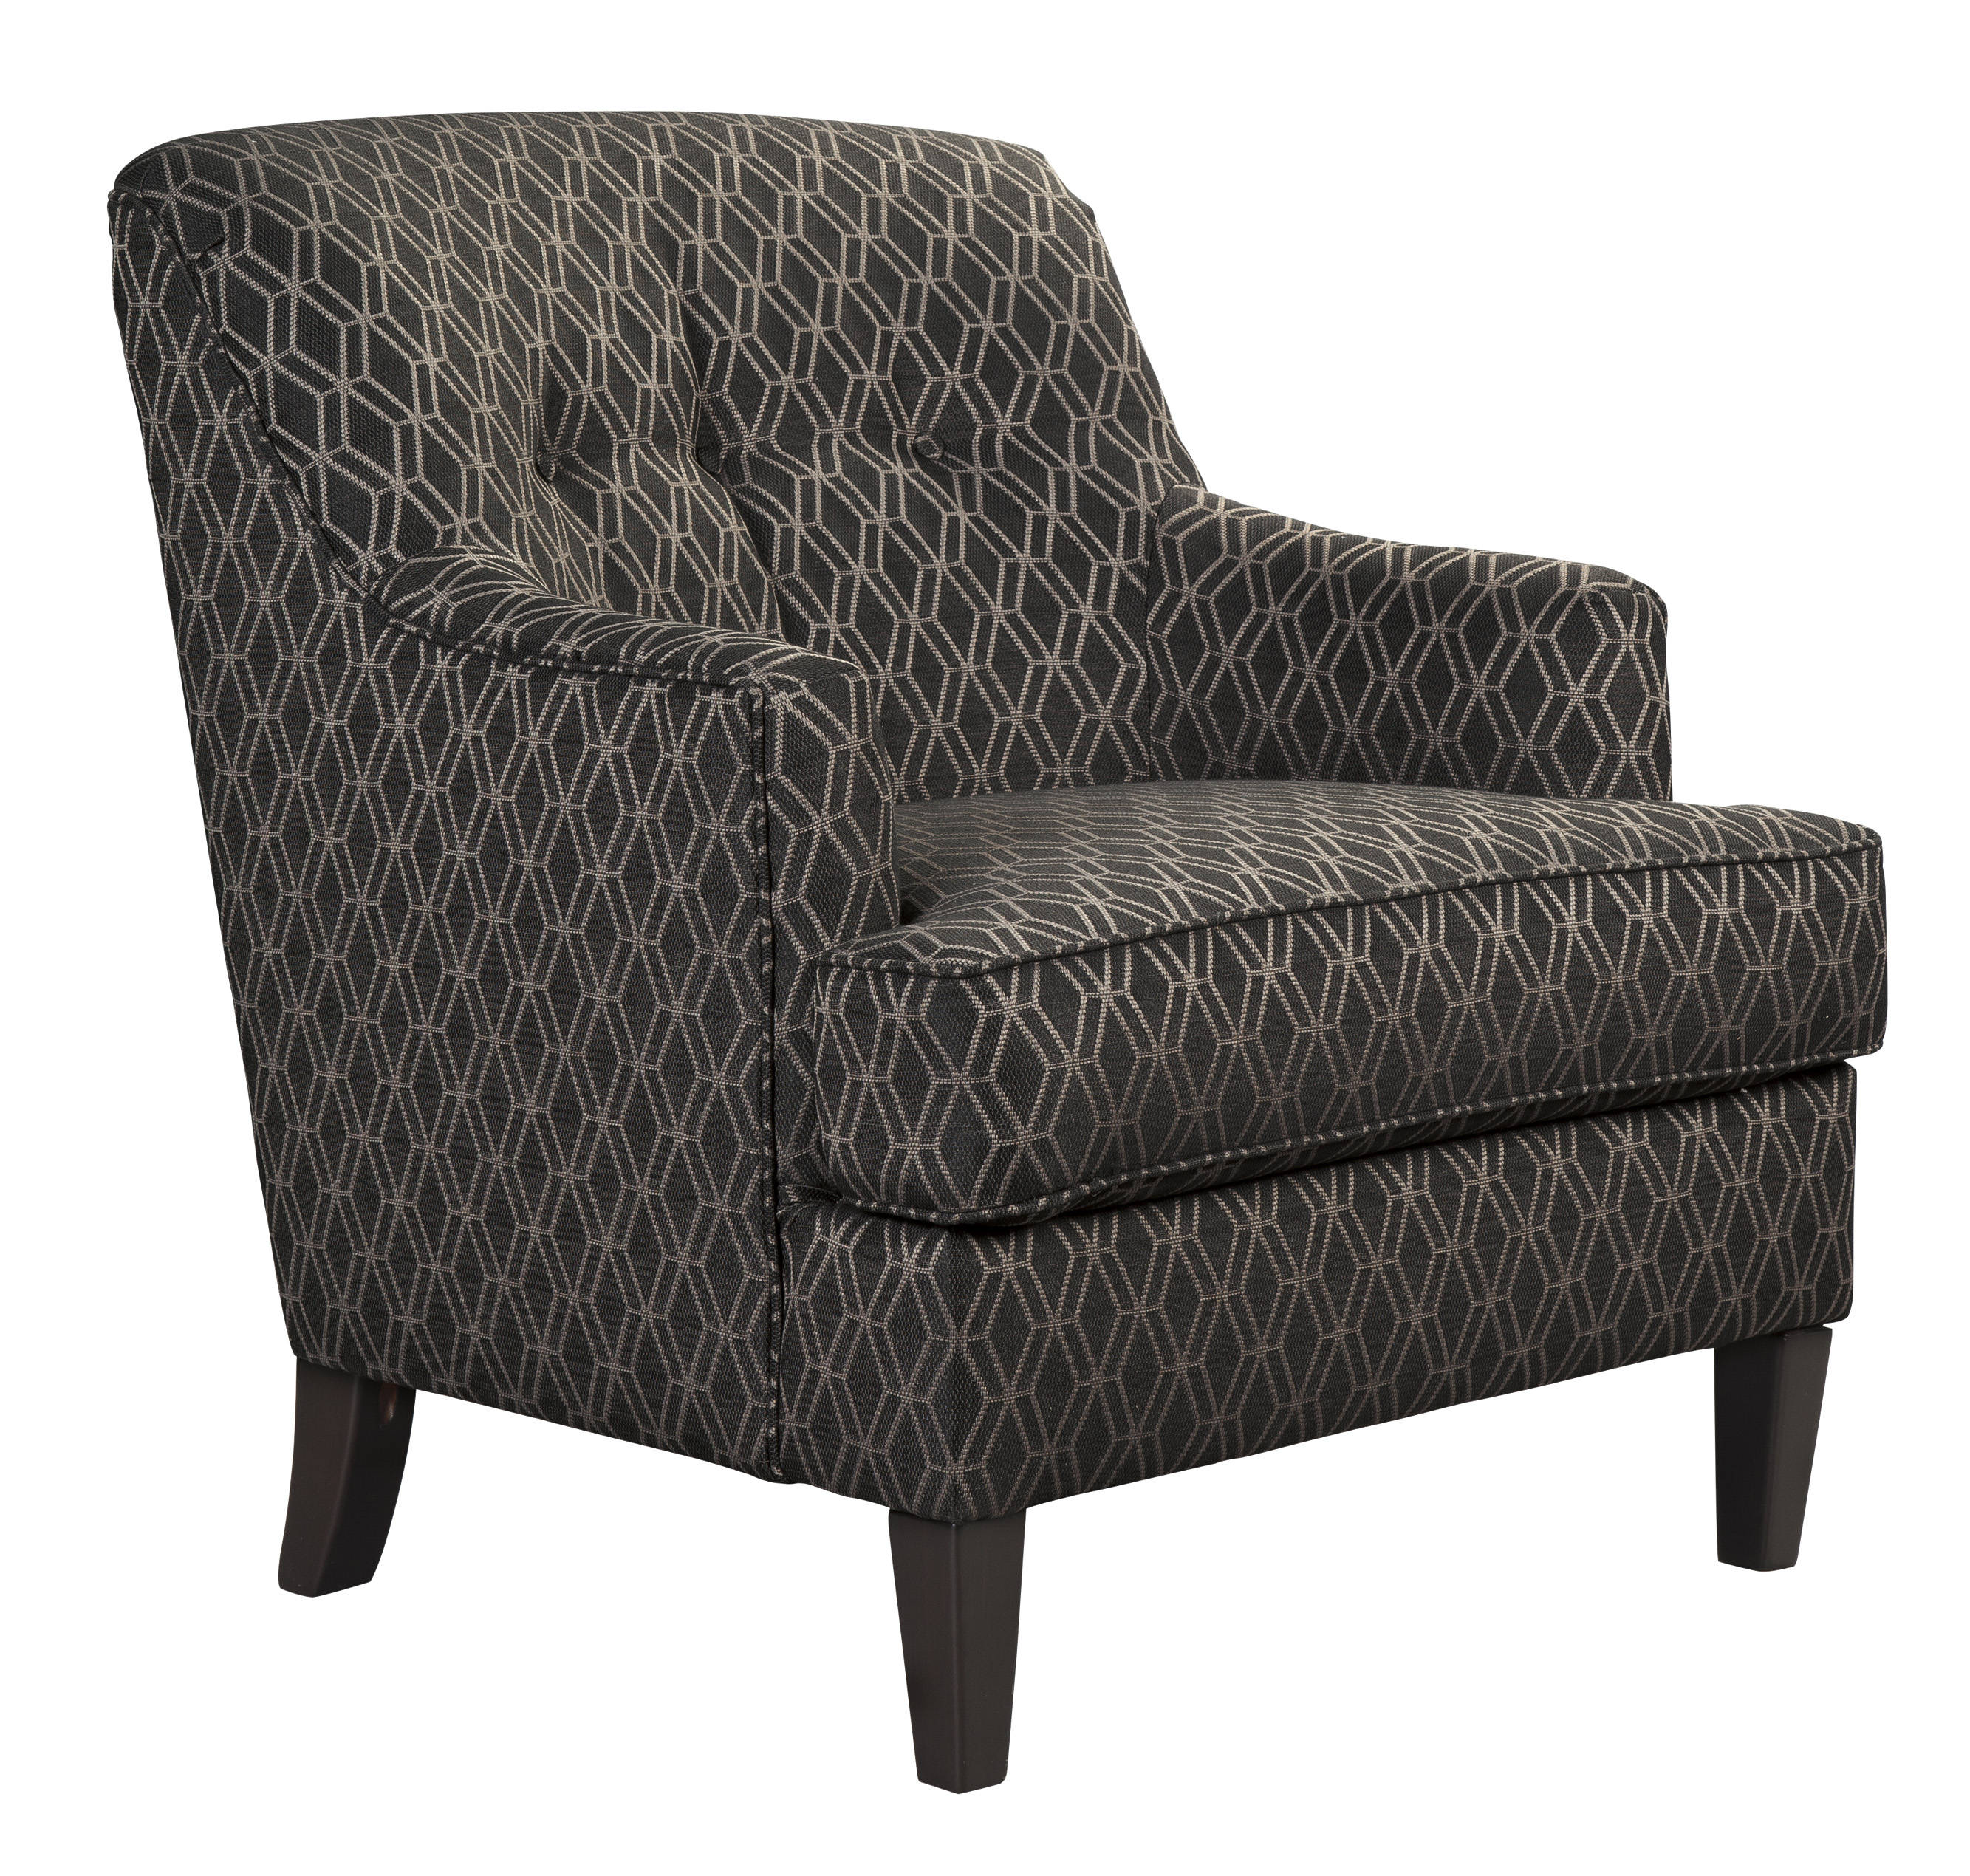 Ashley Furniture Millennium: Ashley Furniture Aquaria Accent Chair